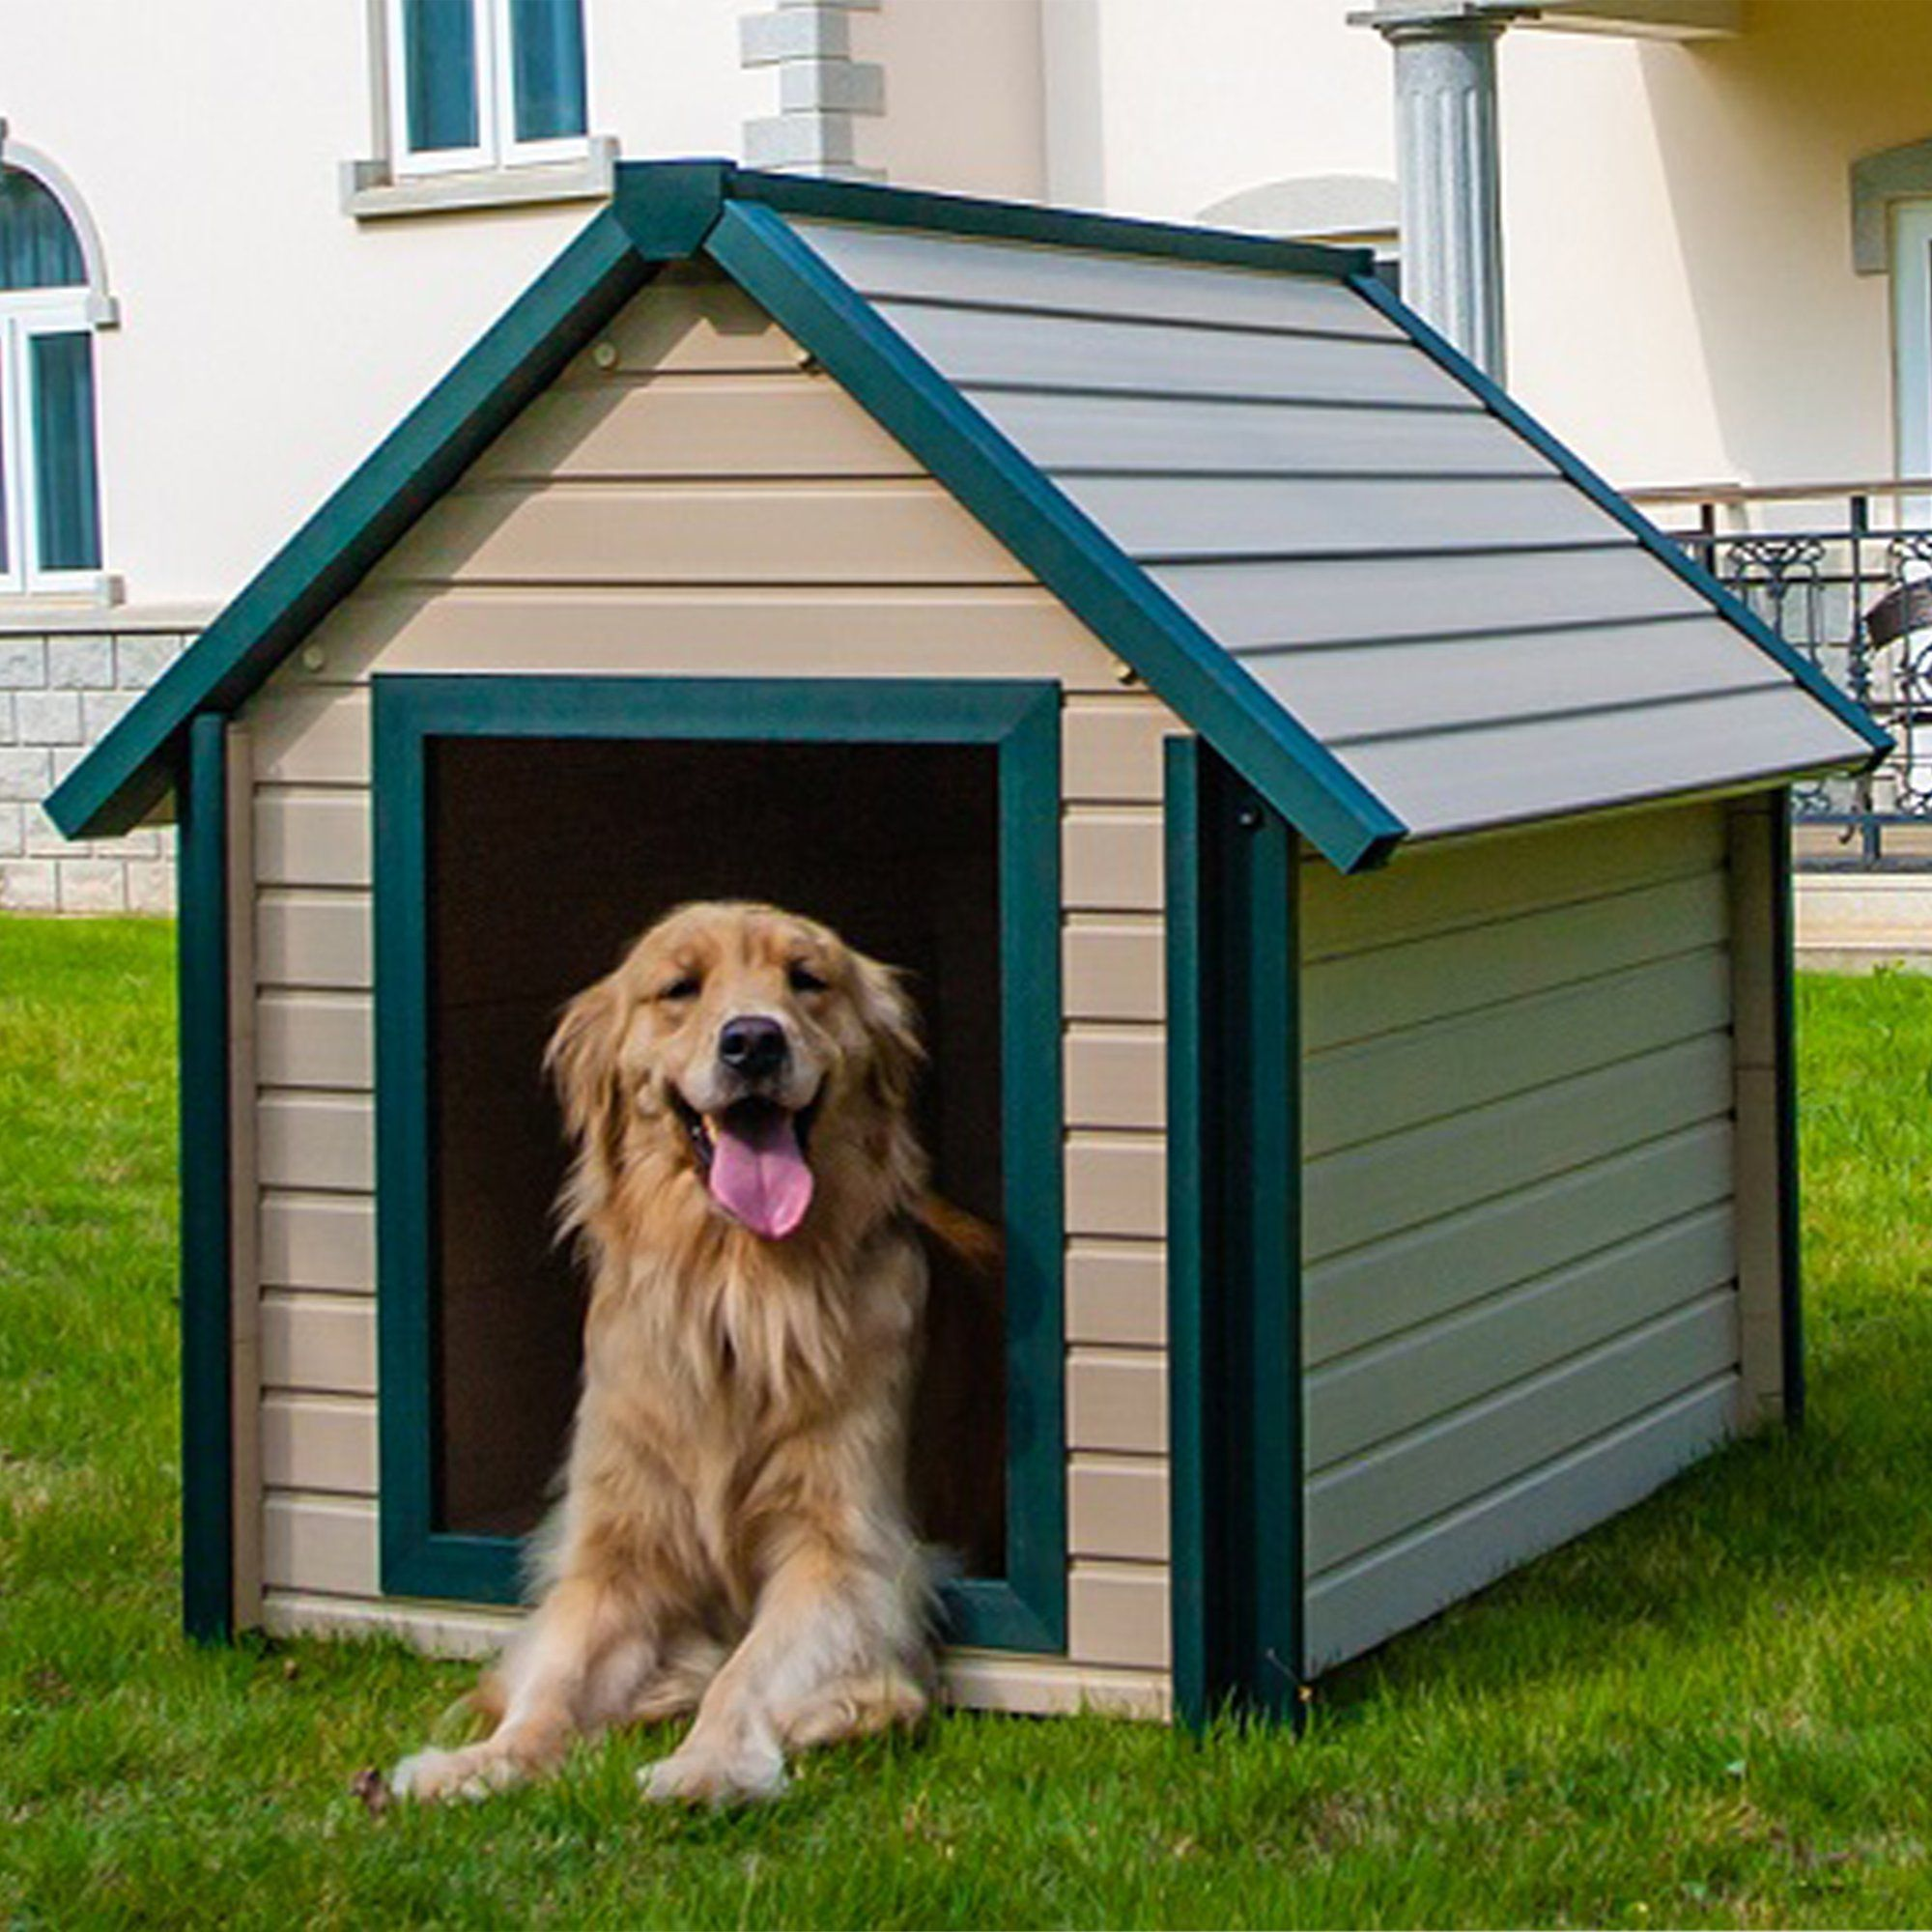 New Age Pet Bunkhouse Dog House X Large Large Dog House Extra